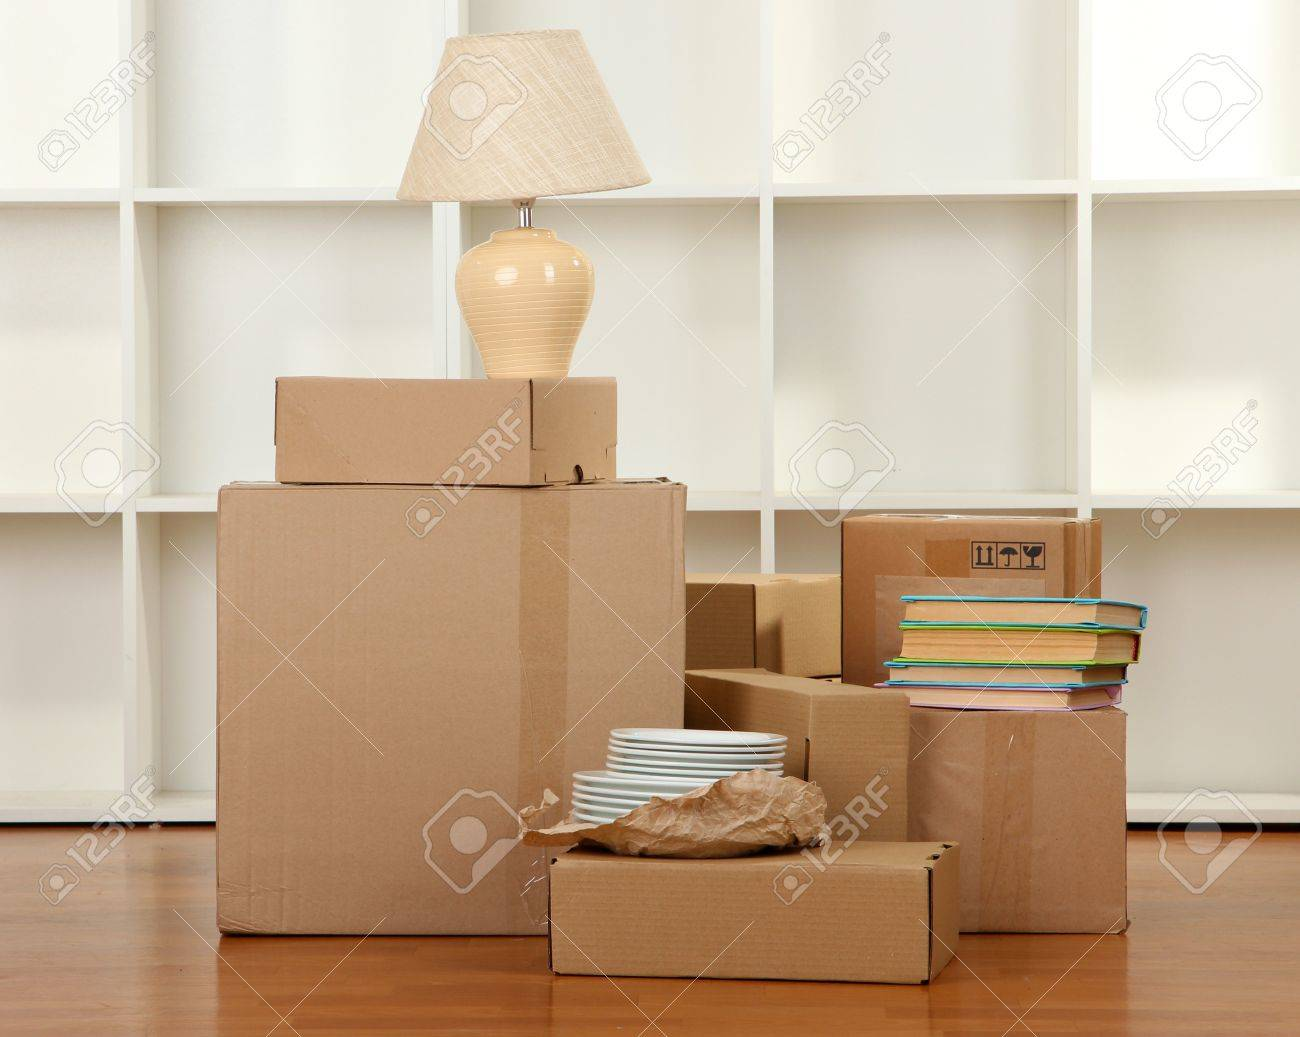 Moving Boxes In Empty Room Stock Photo Picture And Royalty Free